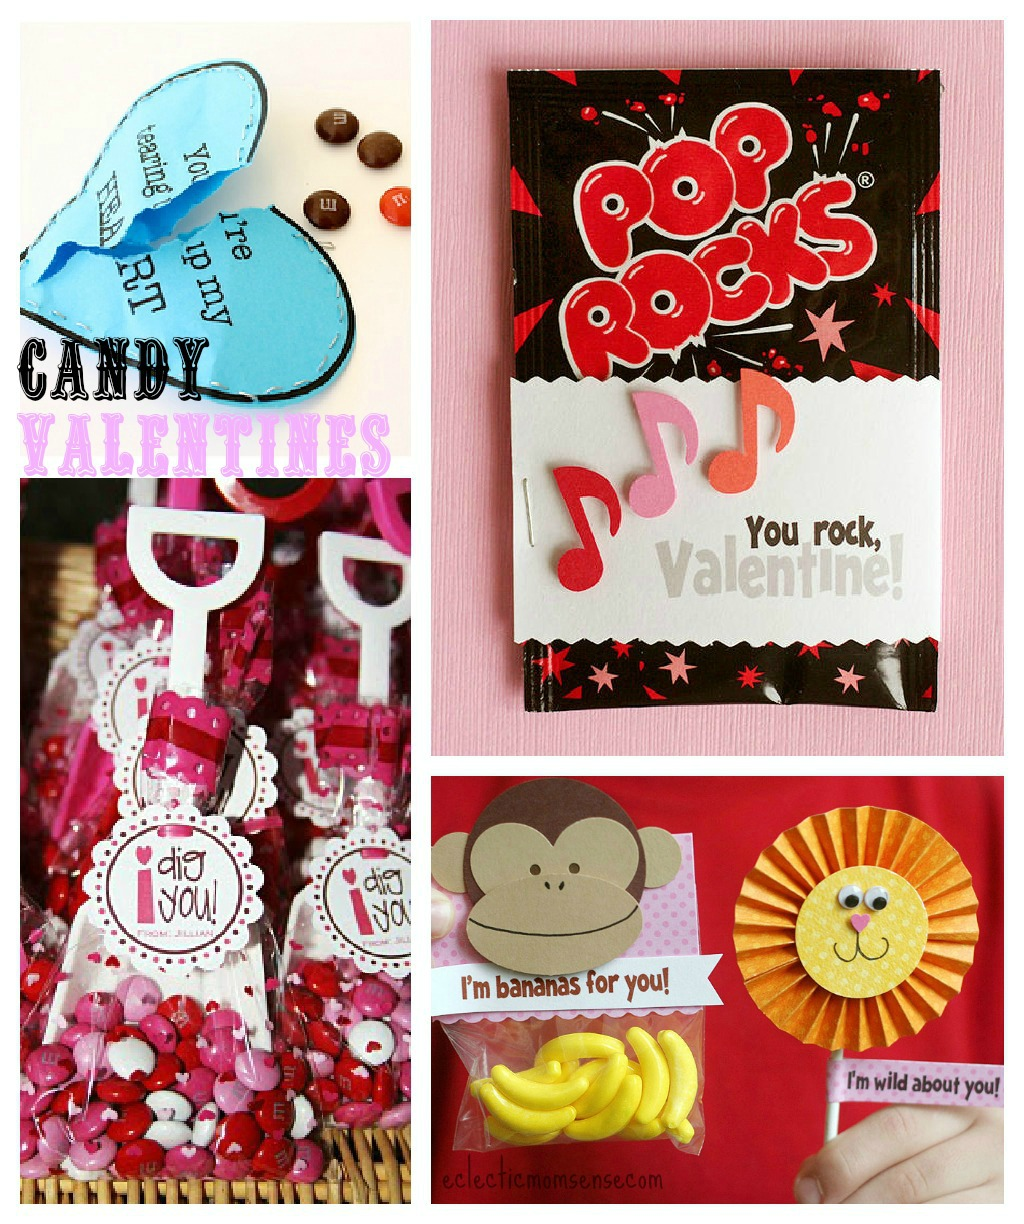 Candy Valentines Ideas via @eclecticmommy - eclecticmomsense.com